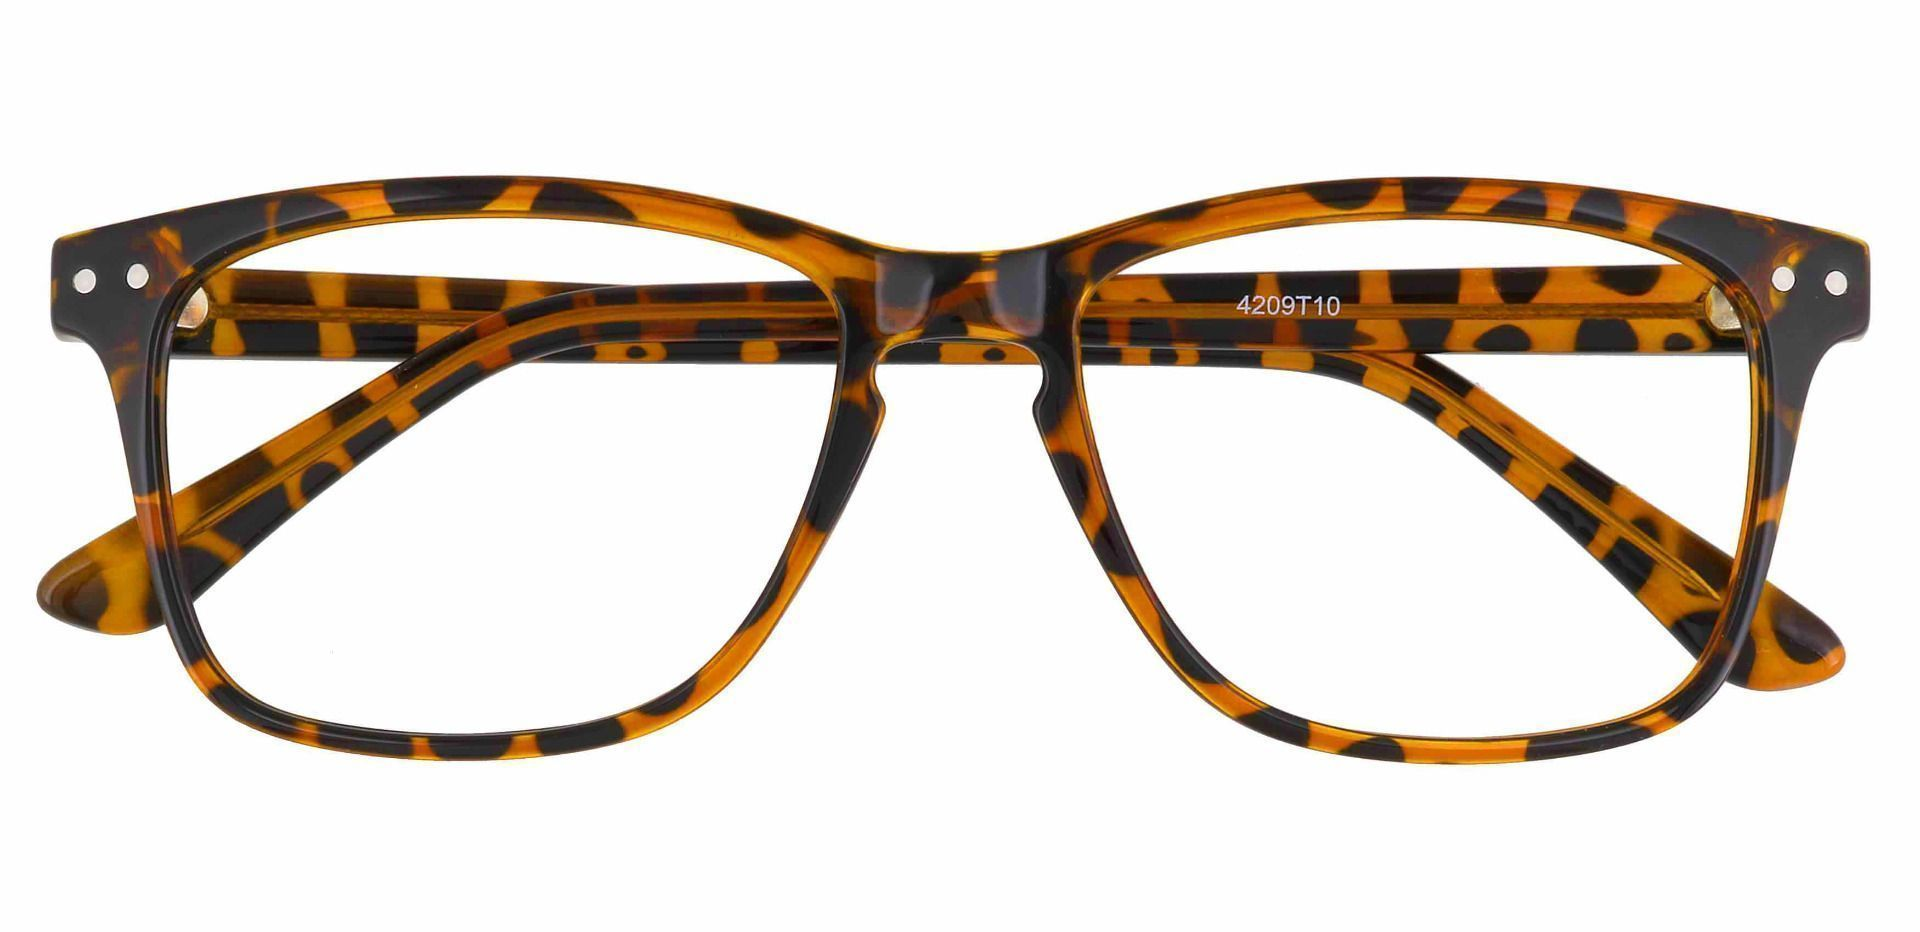 Hope Oval Eyeglasses Frame - Tortoise